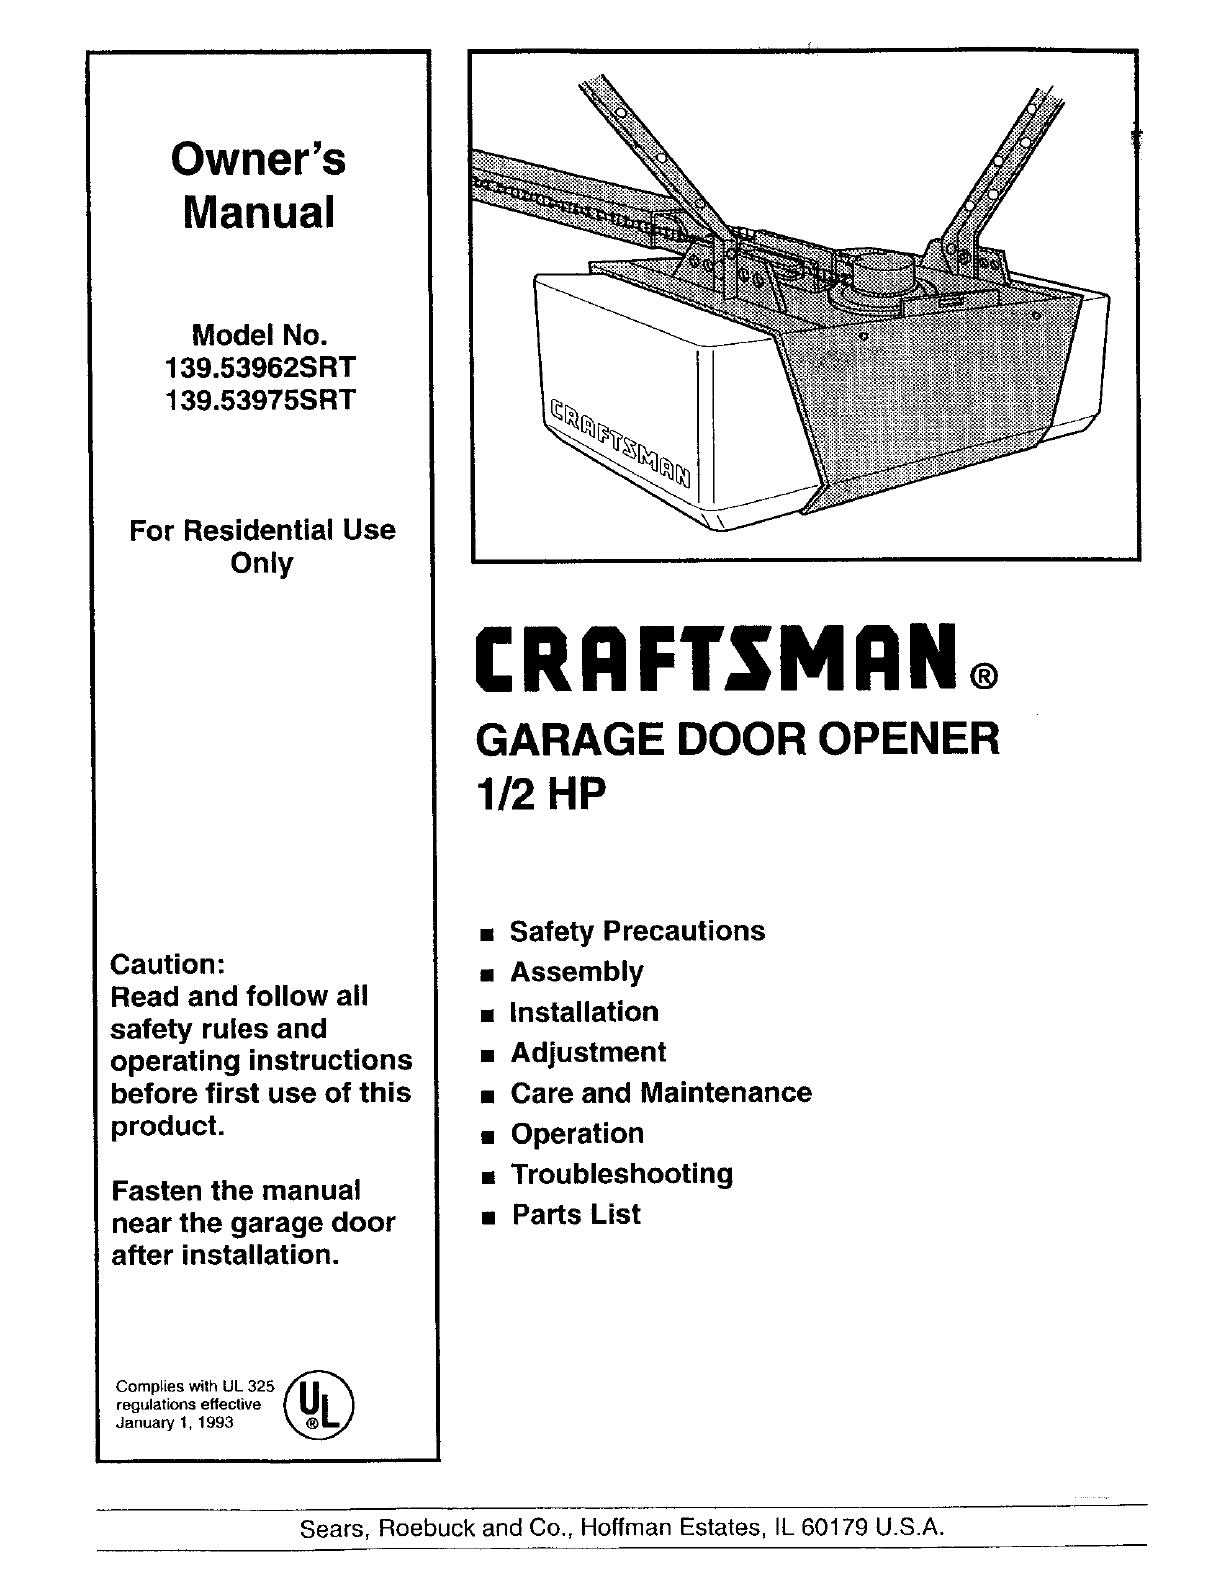 Craftsman garage door opener 13953962 srt user guide craftsman 13953962 srt garage door opener user manual asfbconference2016